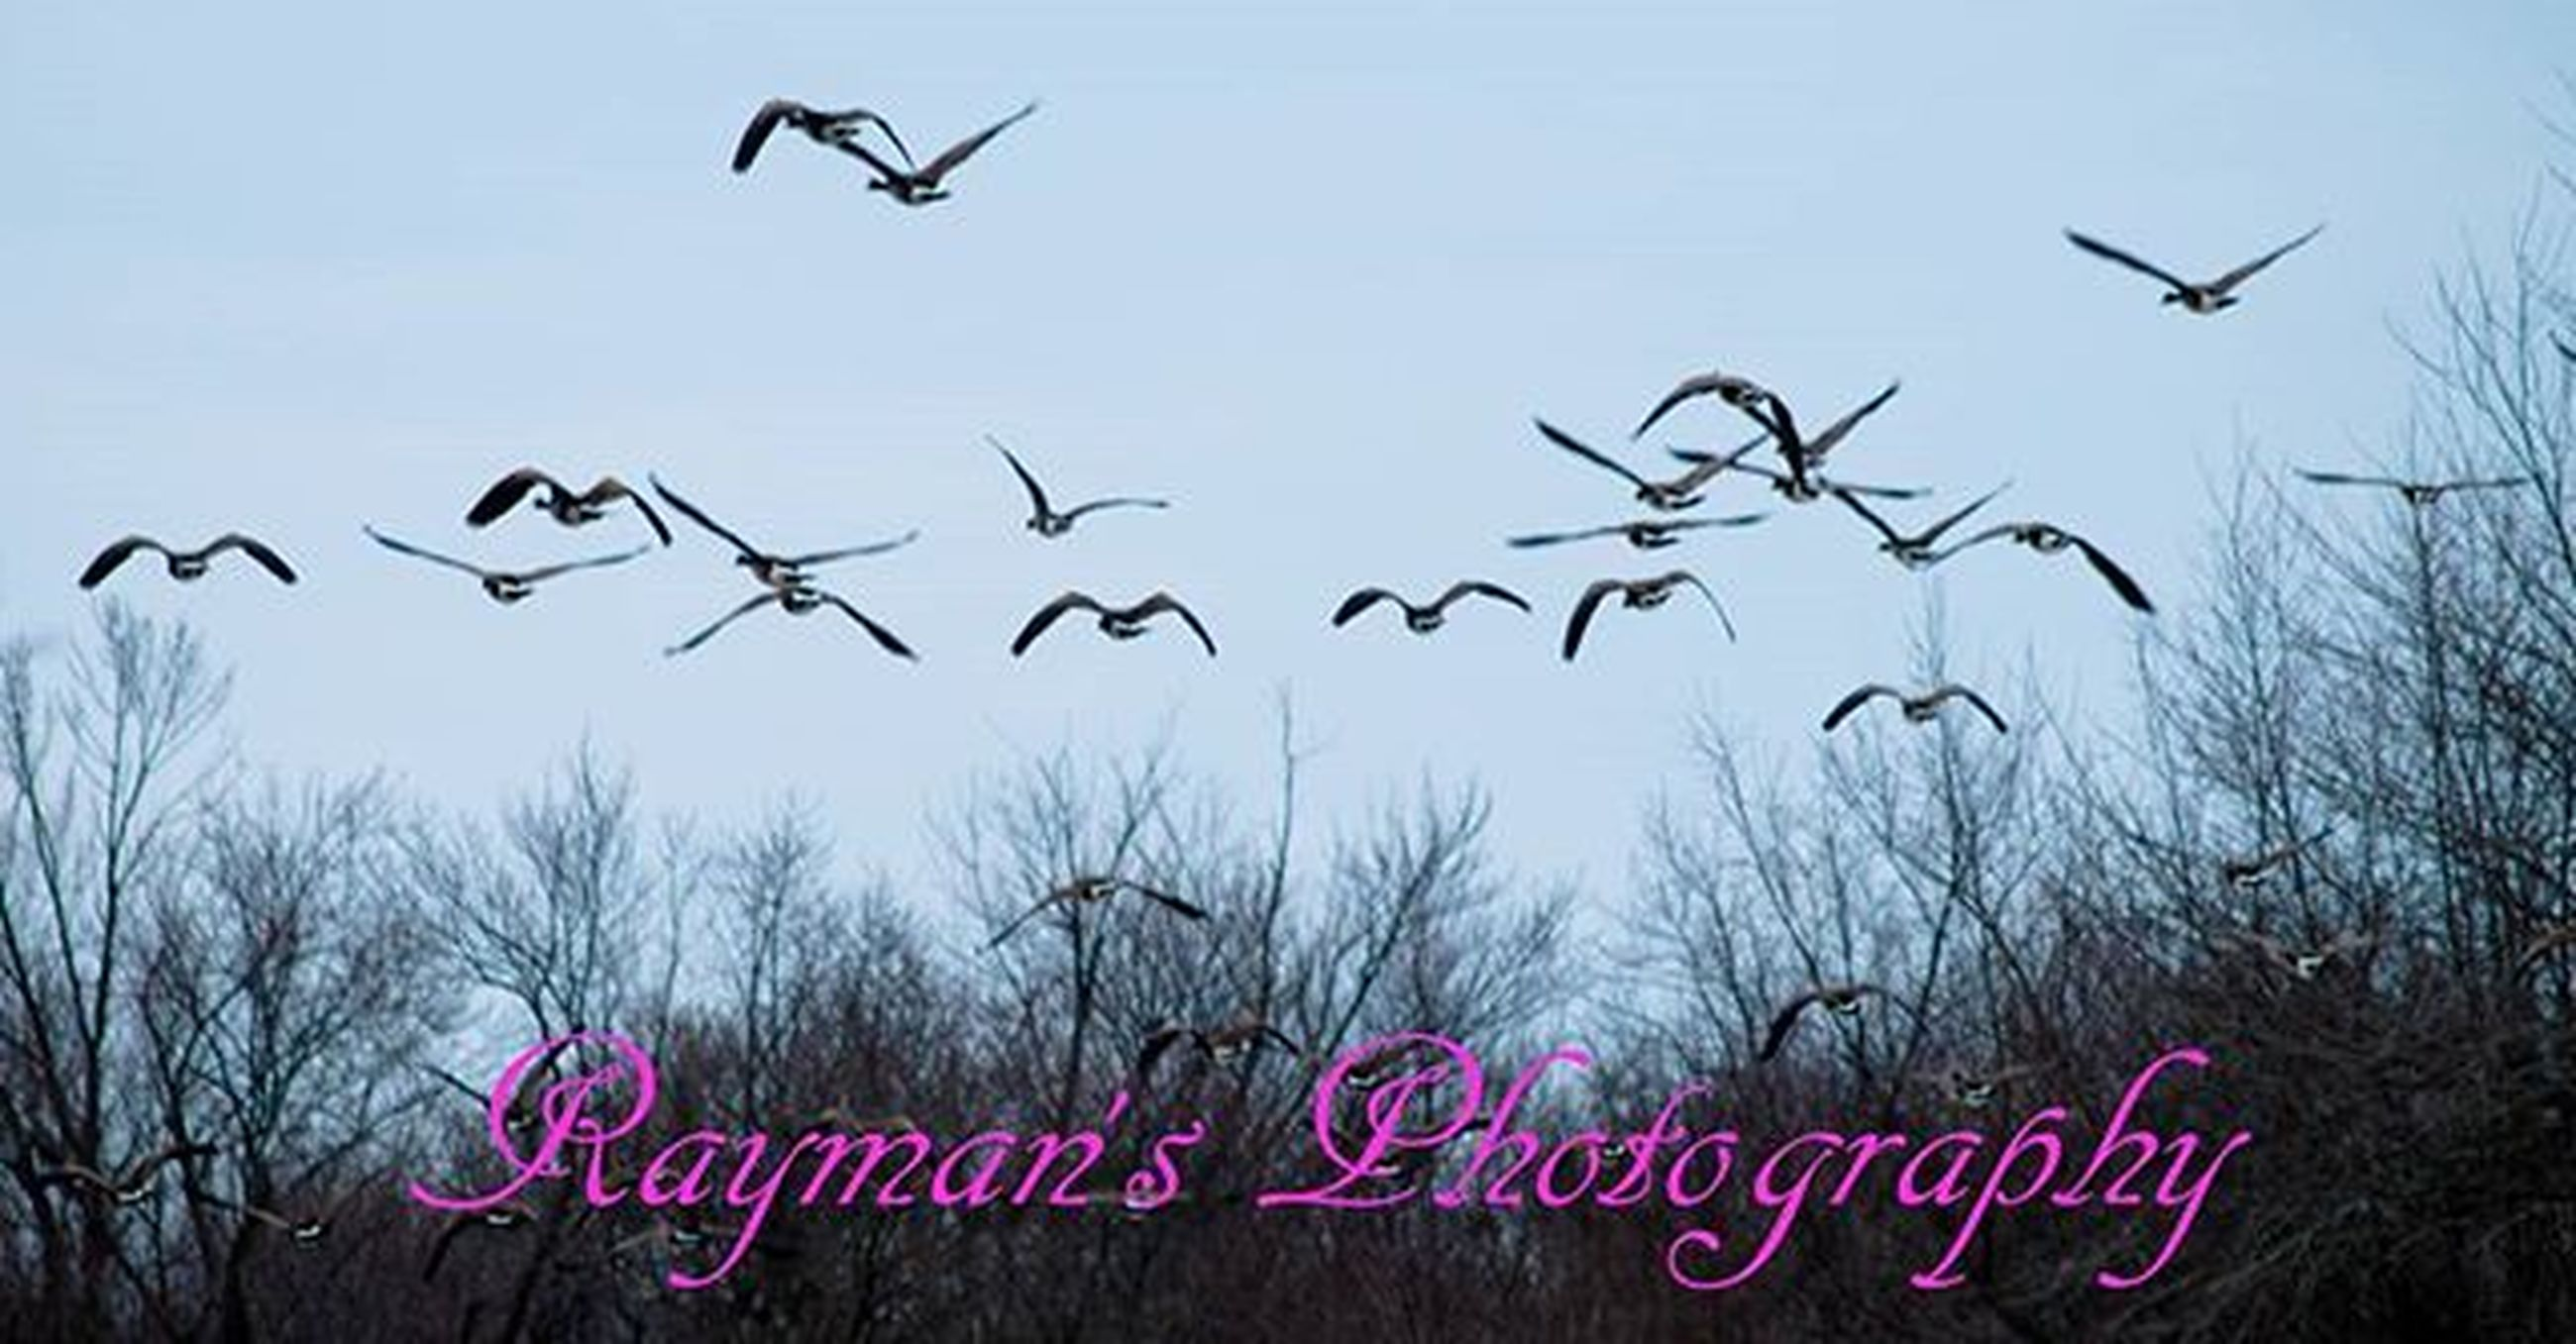 flying, bird, flock of birds, animal themes, animals in the wild, mid-air, wildlife, low angle view, sky, spread wings, clear sky, nature, outdoors, silhouette, beauty in nature, no people, day, tree, medium group of animals